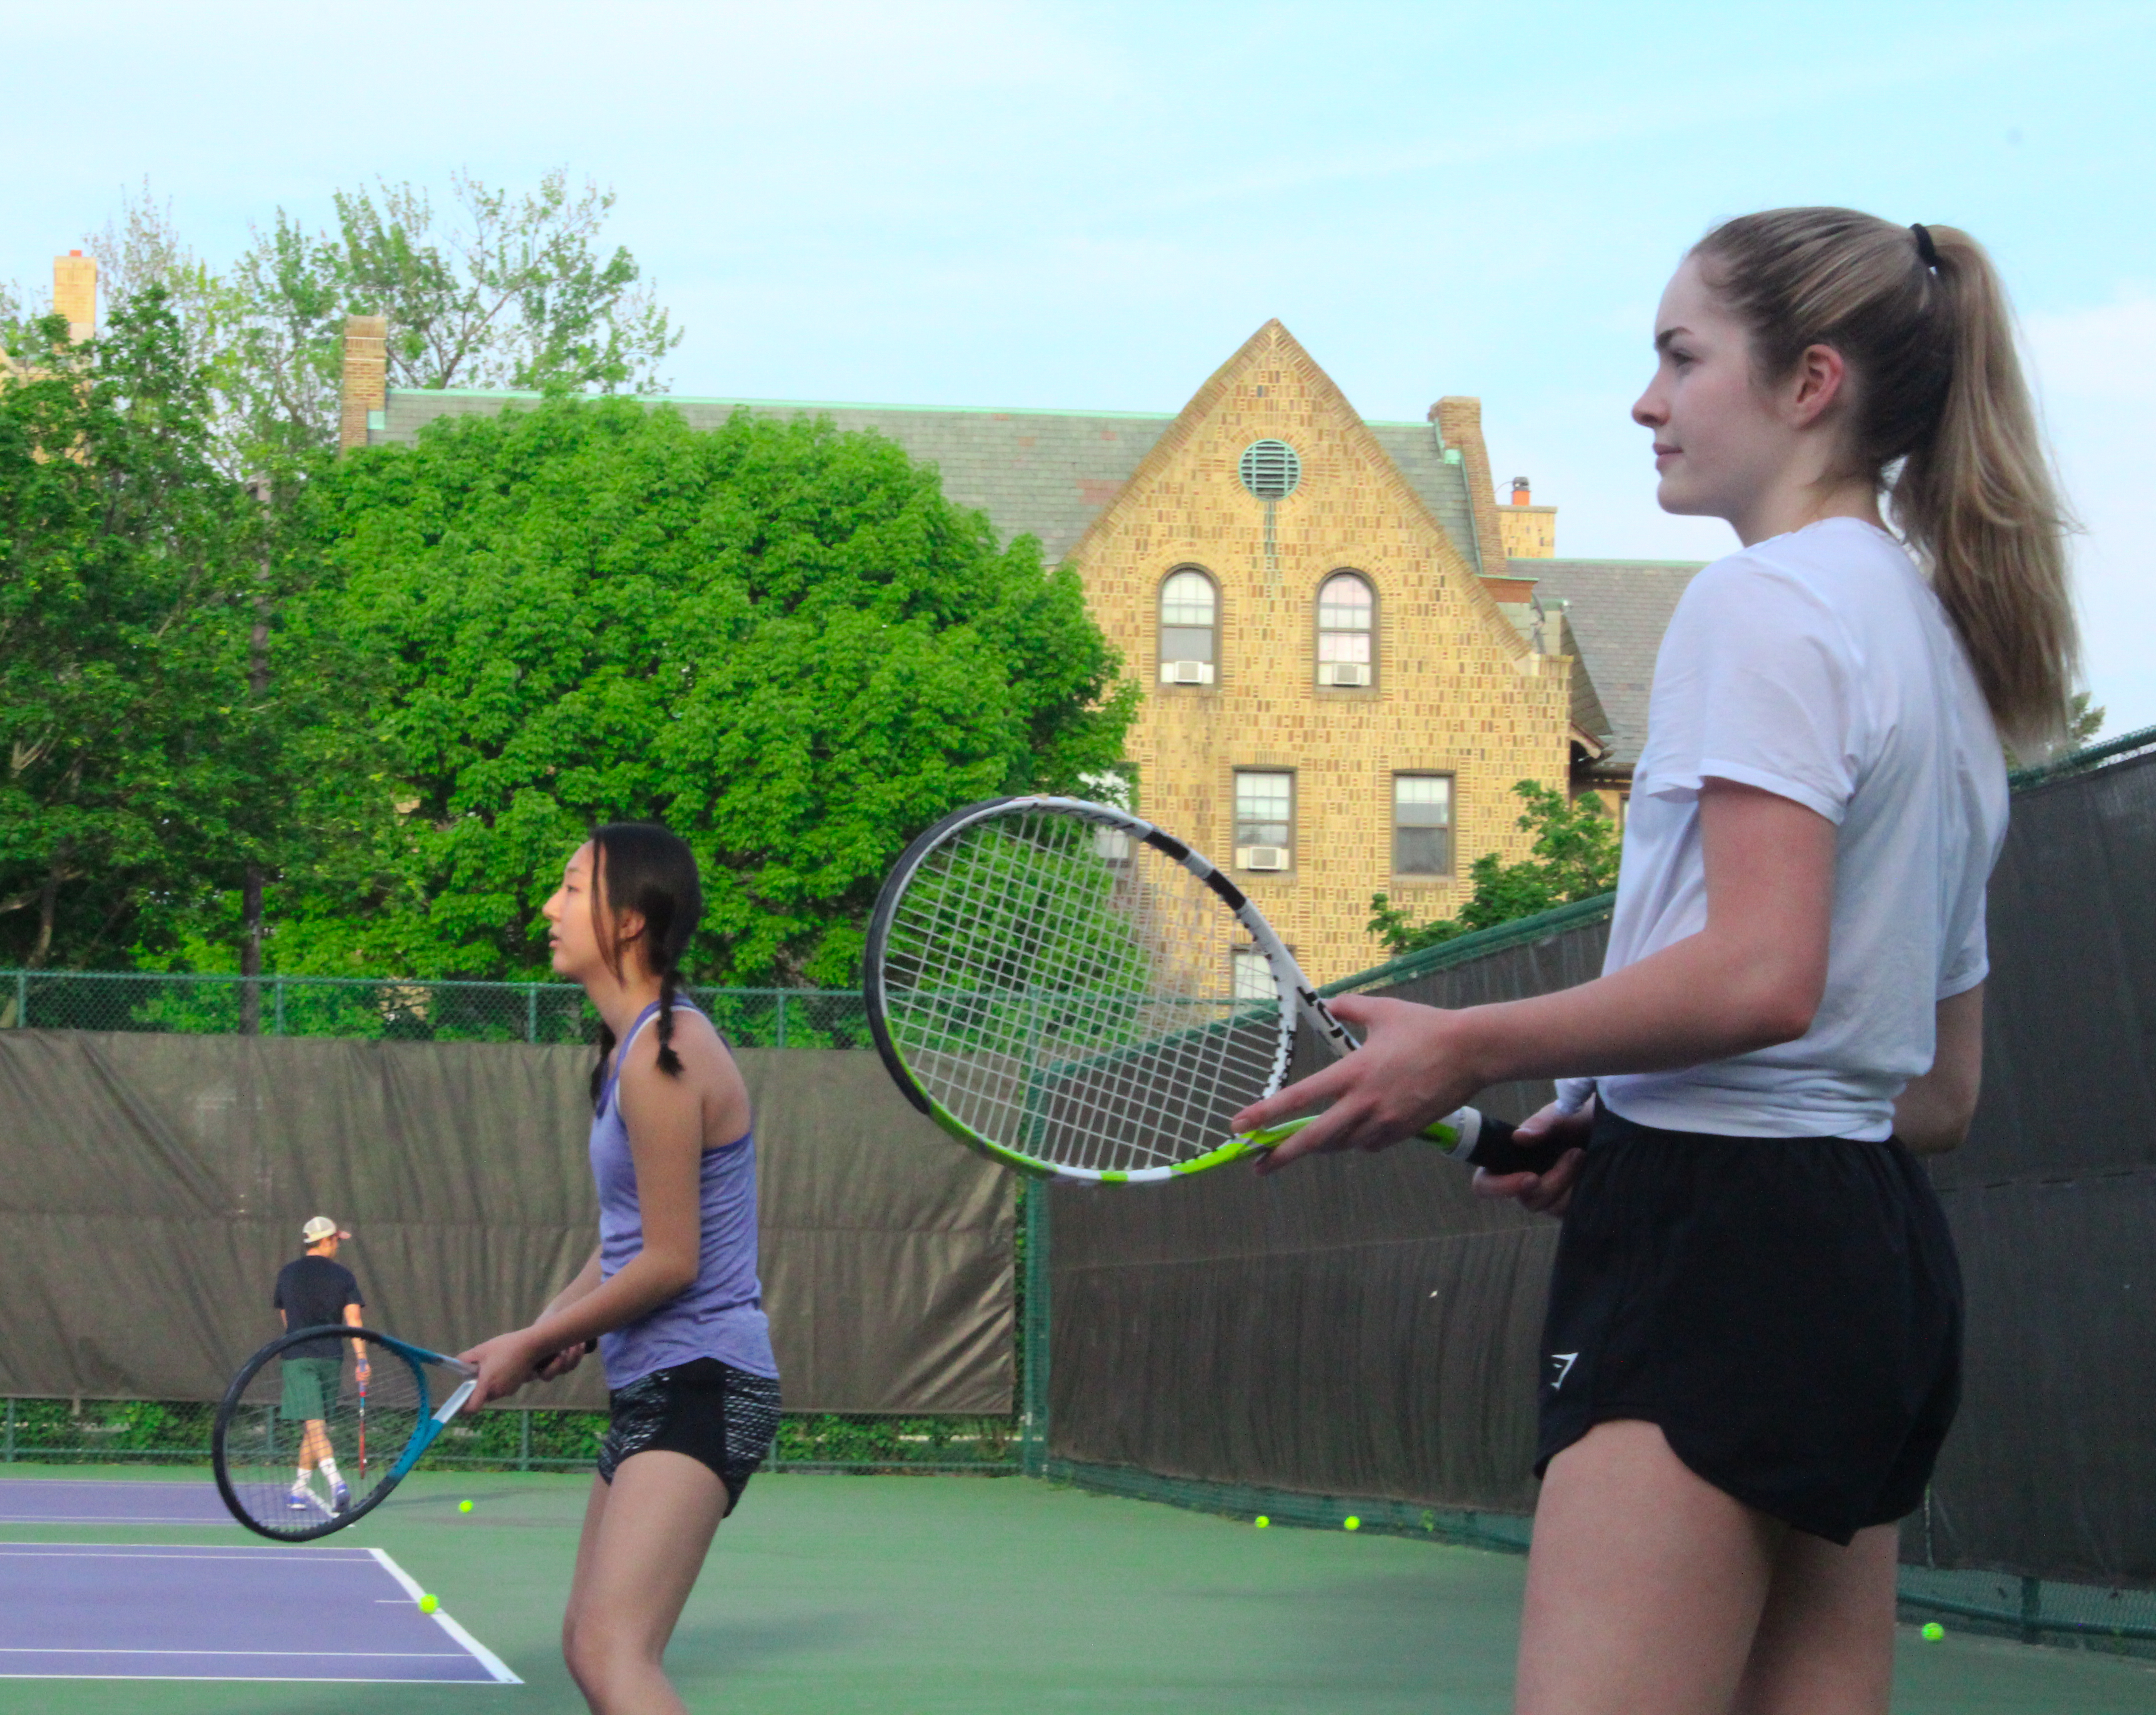 Two students playing tennis on an outdoor court